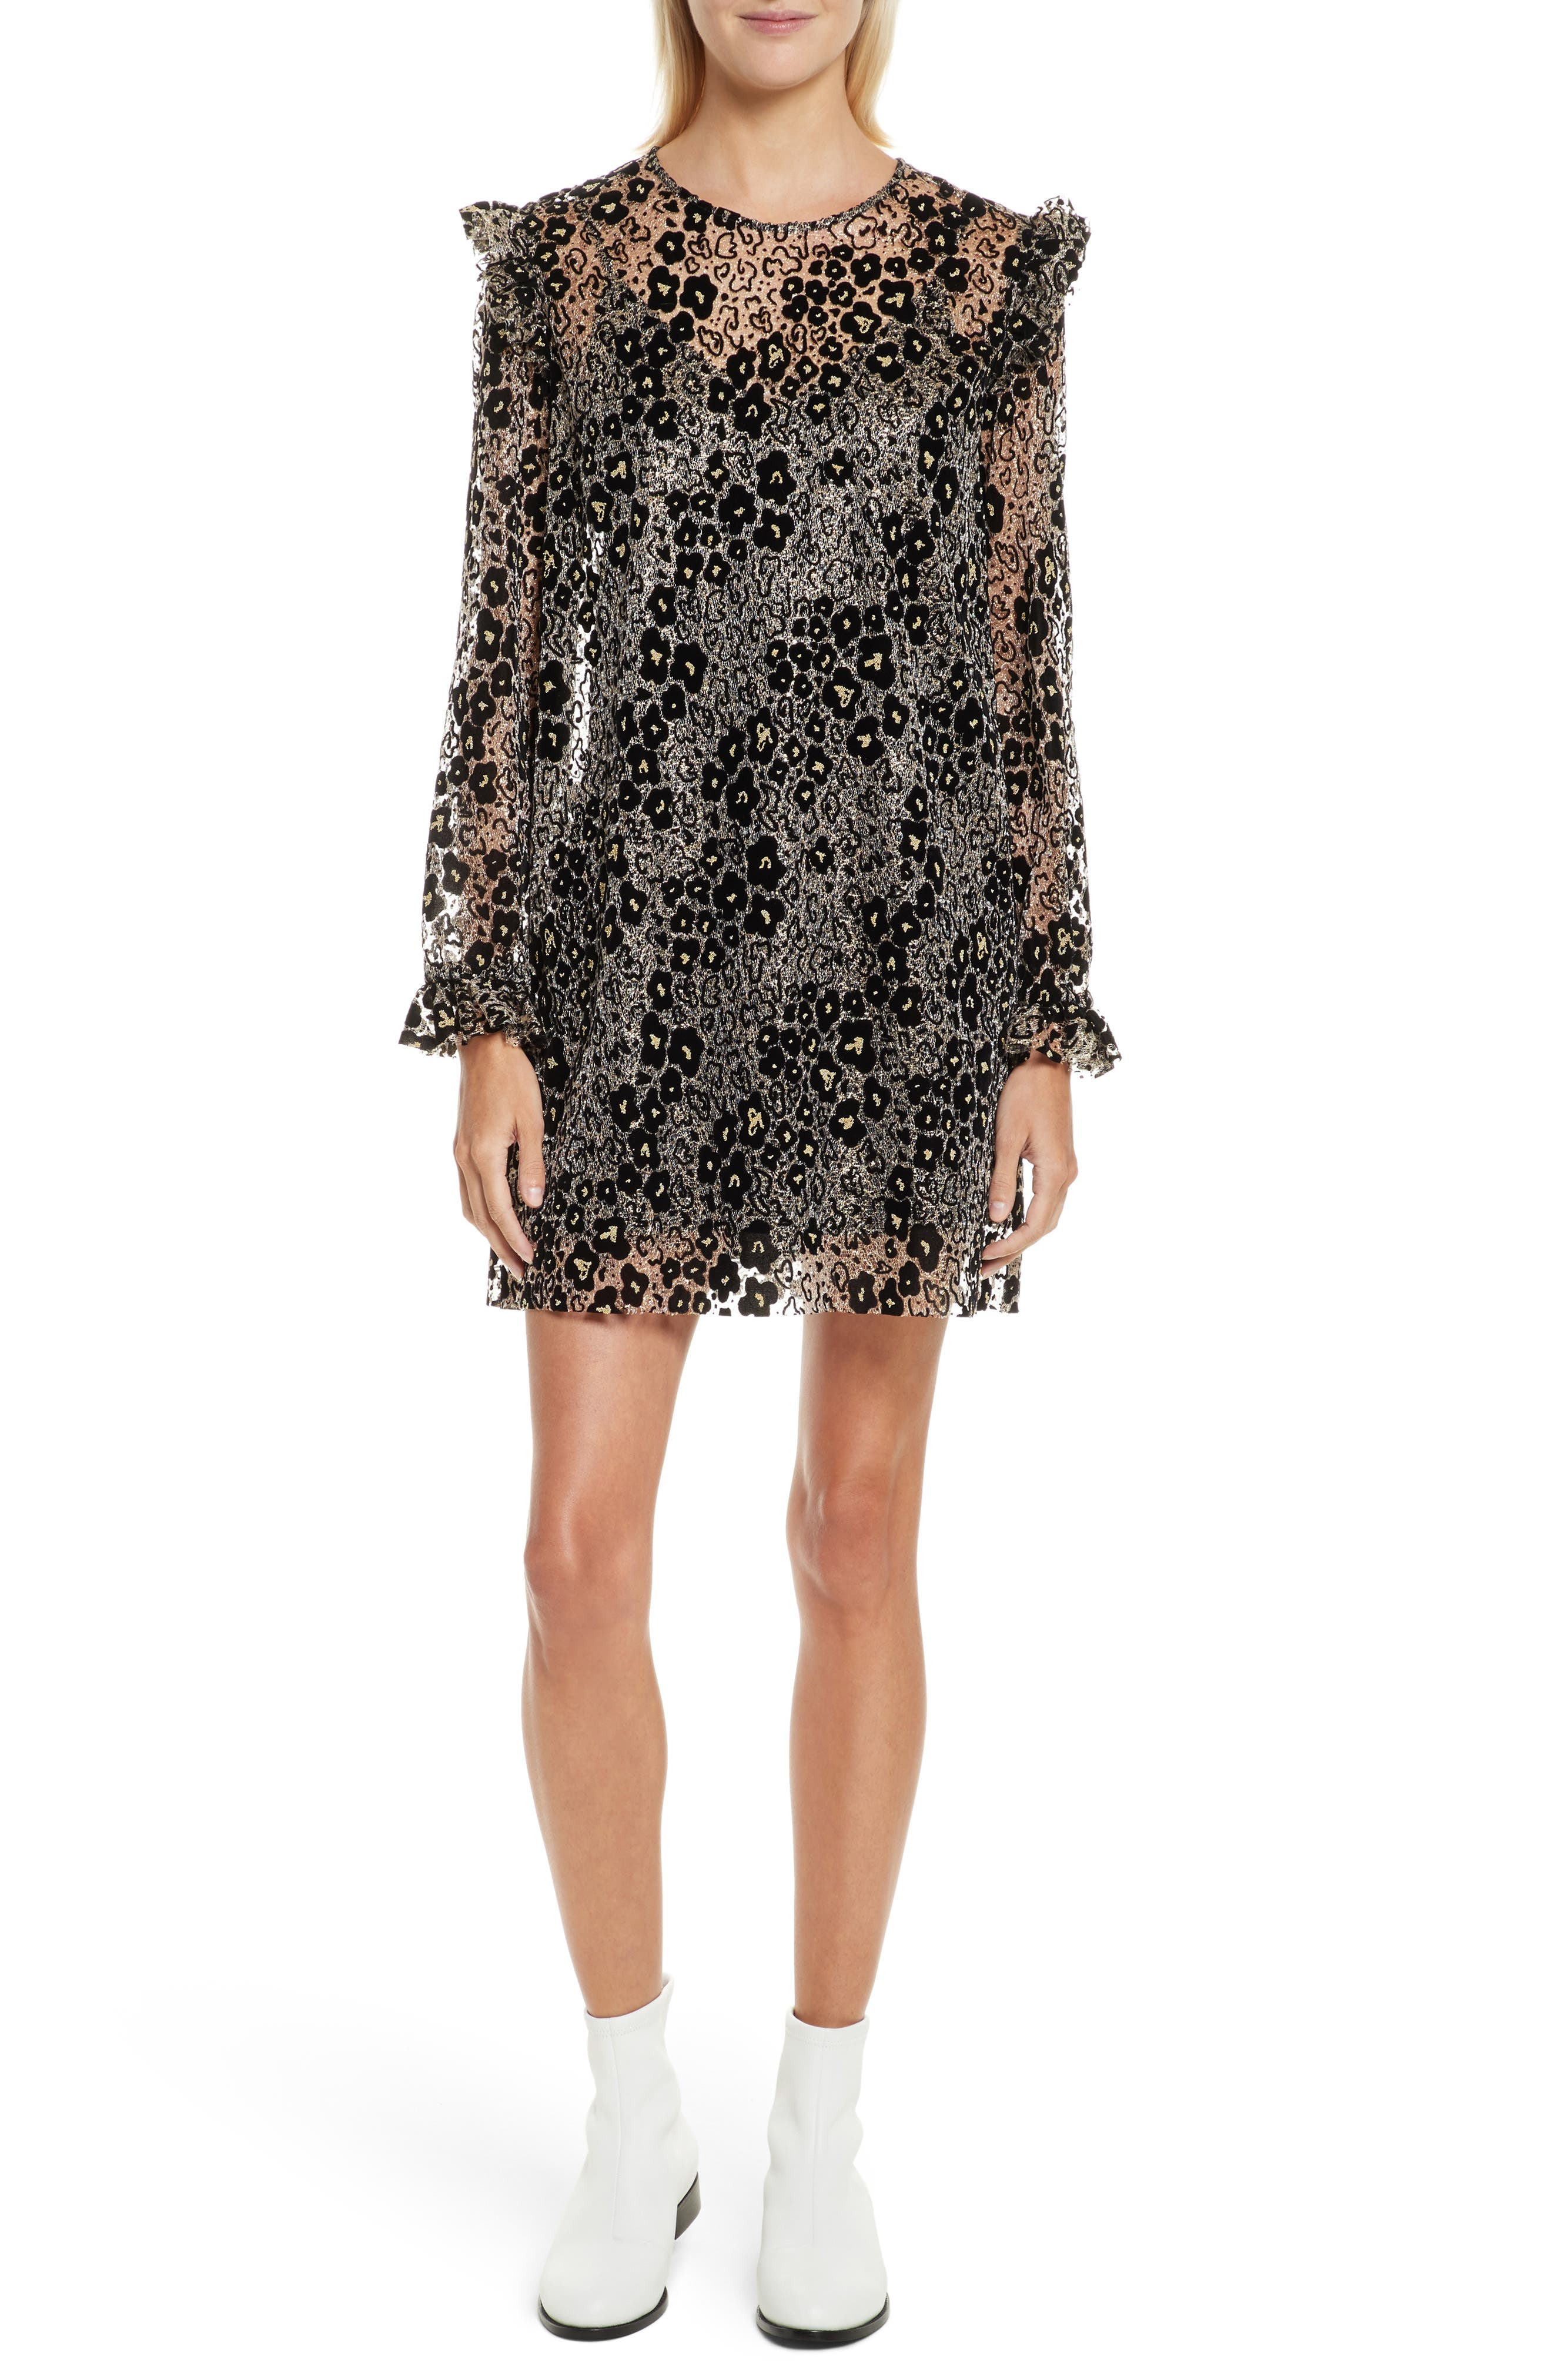 Opening Ceremony Floral Glitter Dress